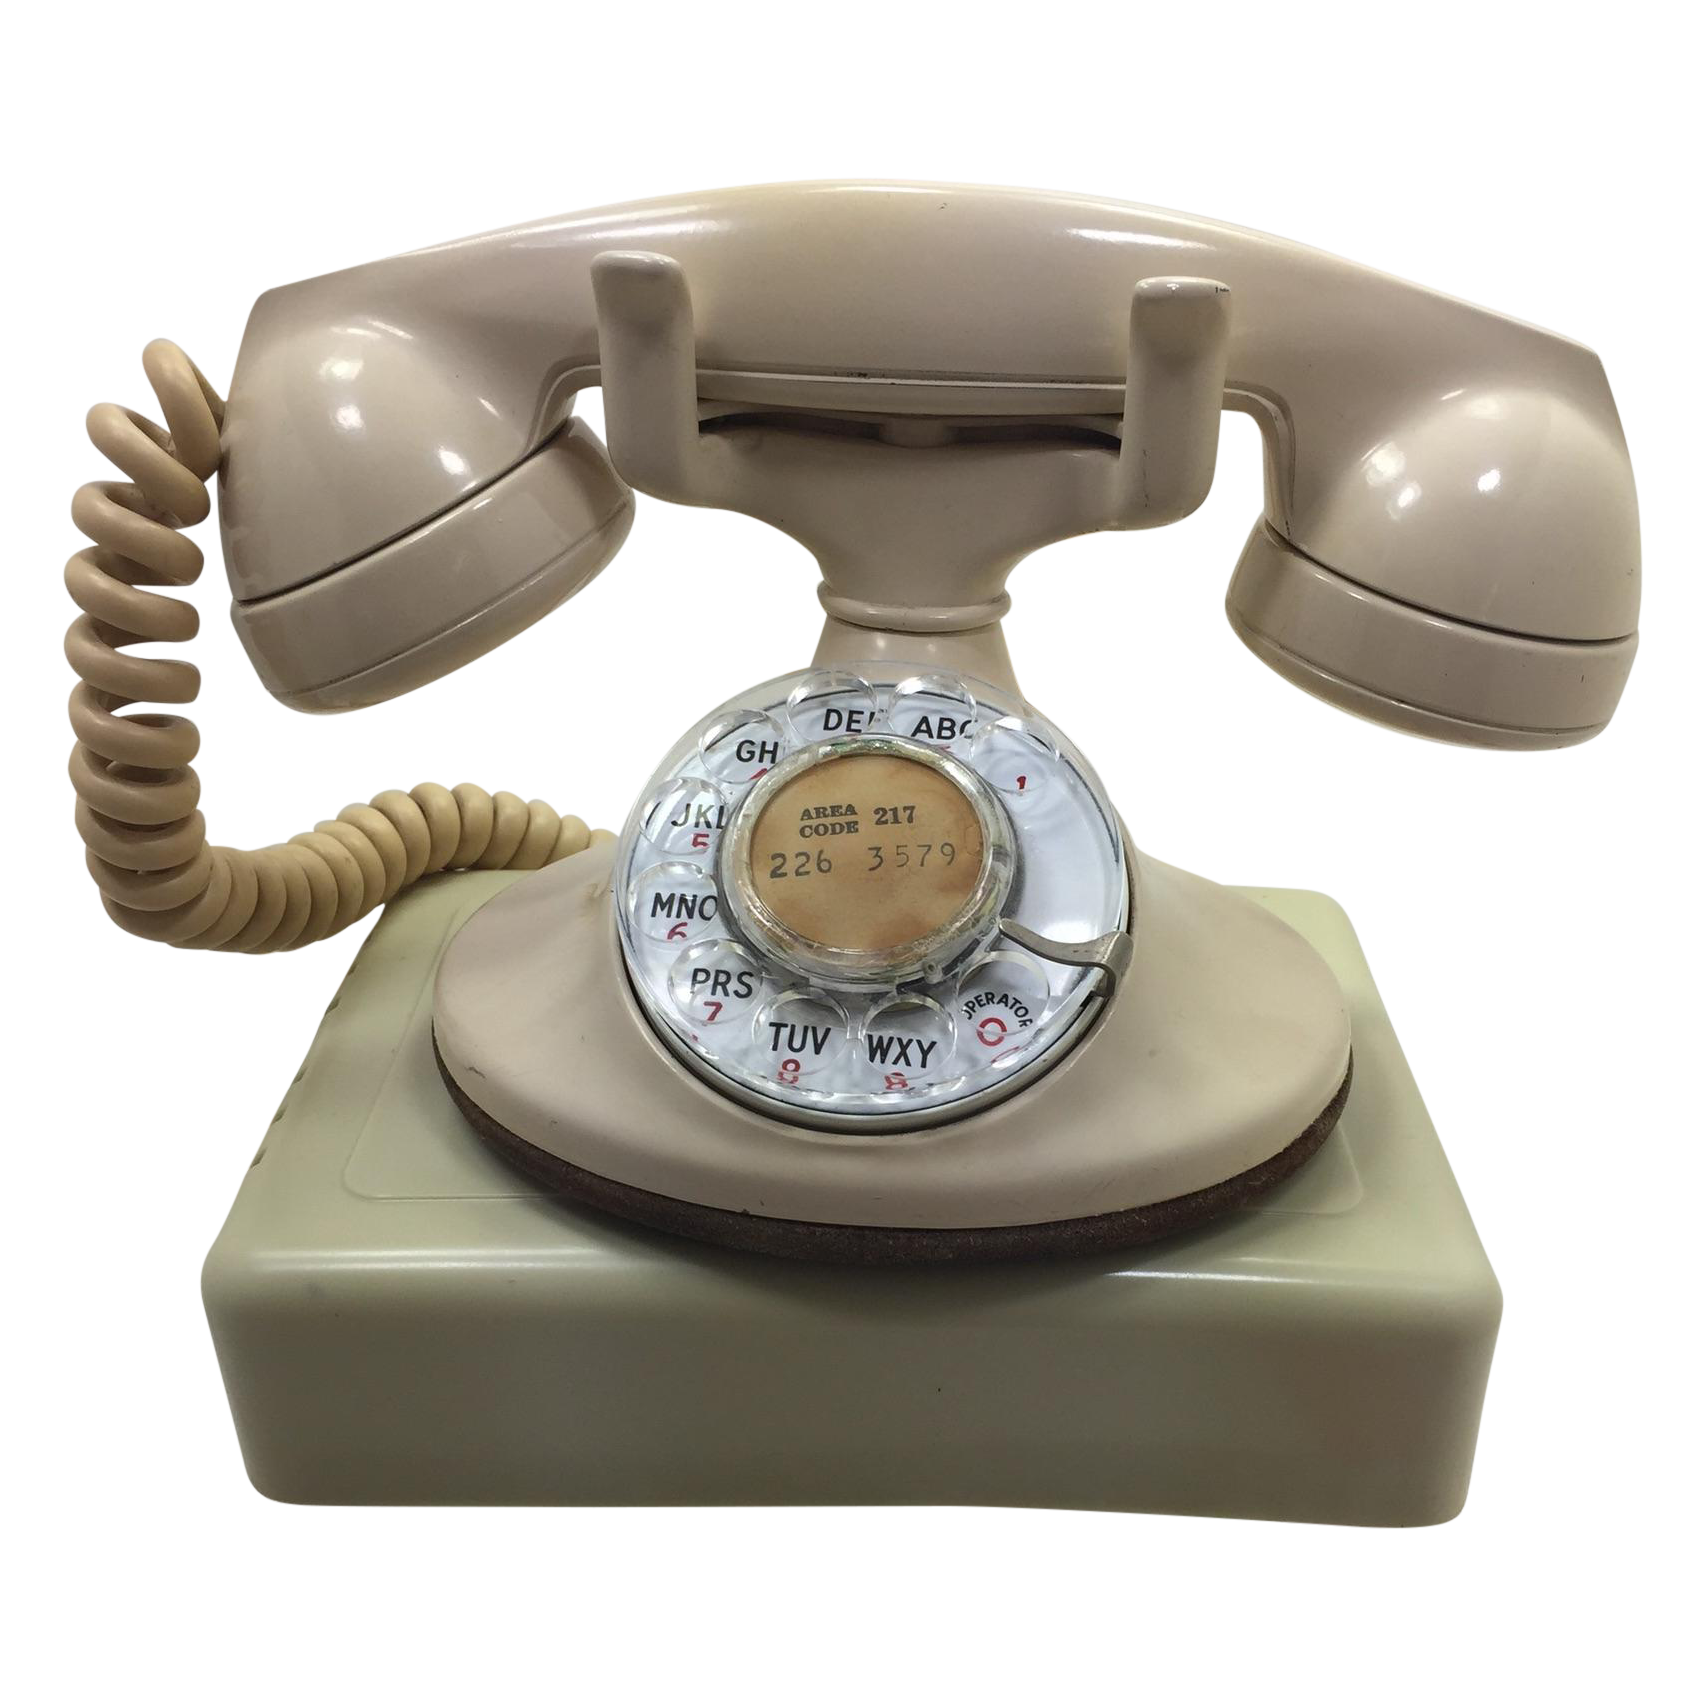 Telephone clipart rotary dial phone.  western electric desk